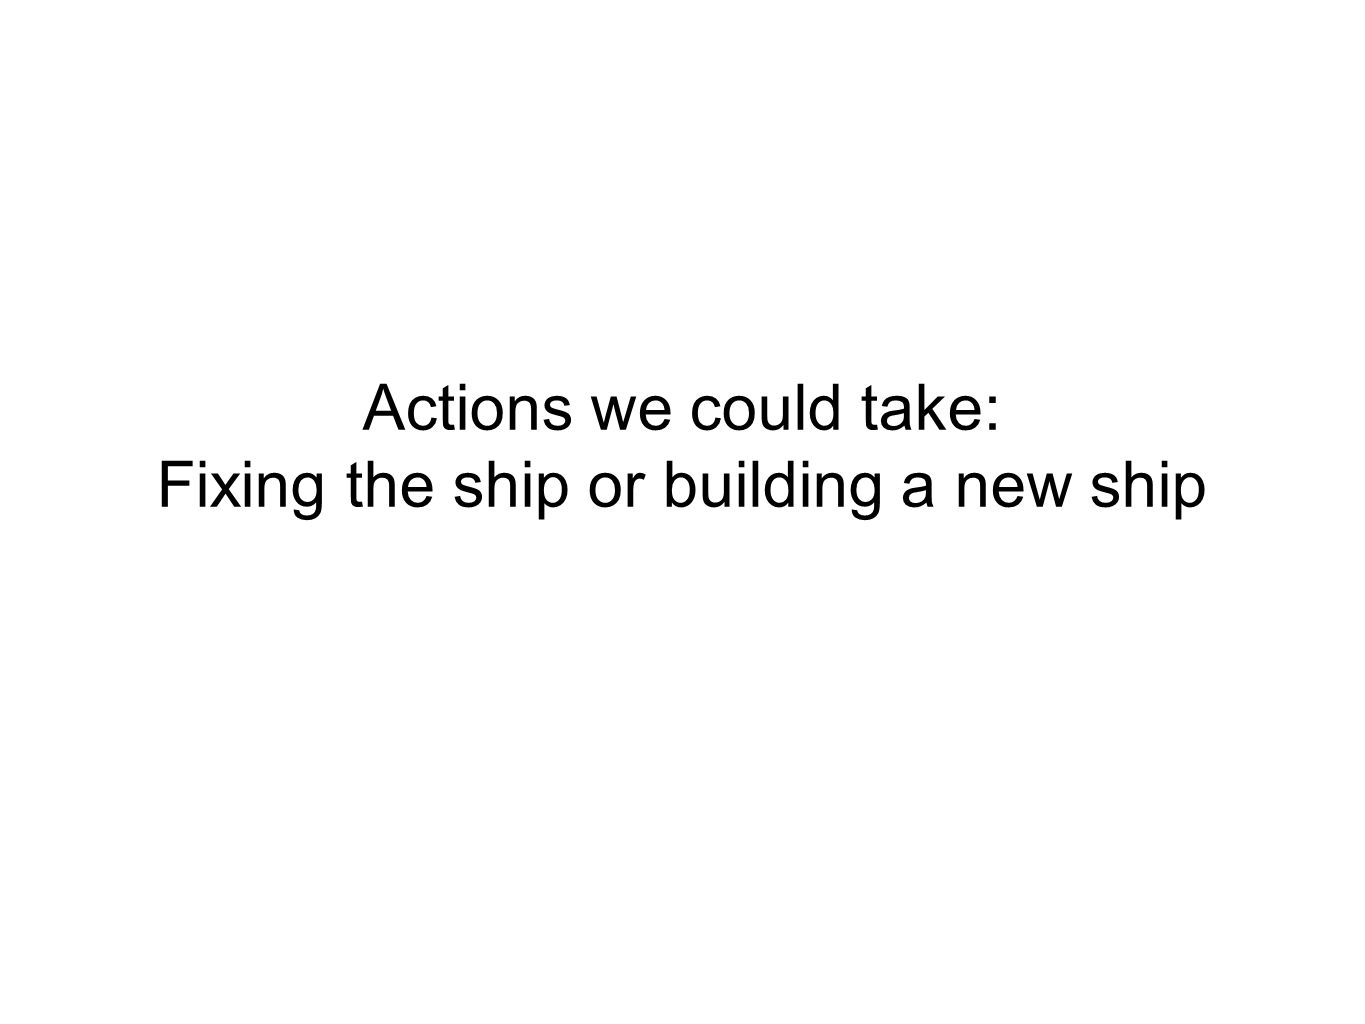 Actions we could take: Fixing the ship or building a new ship